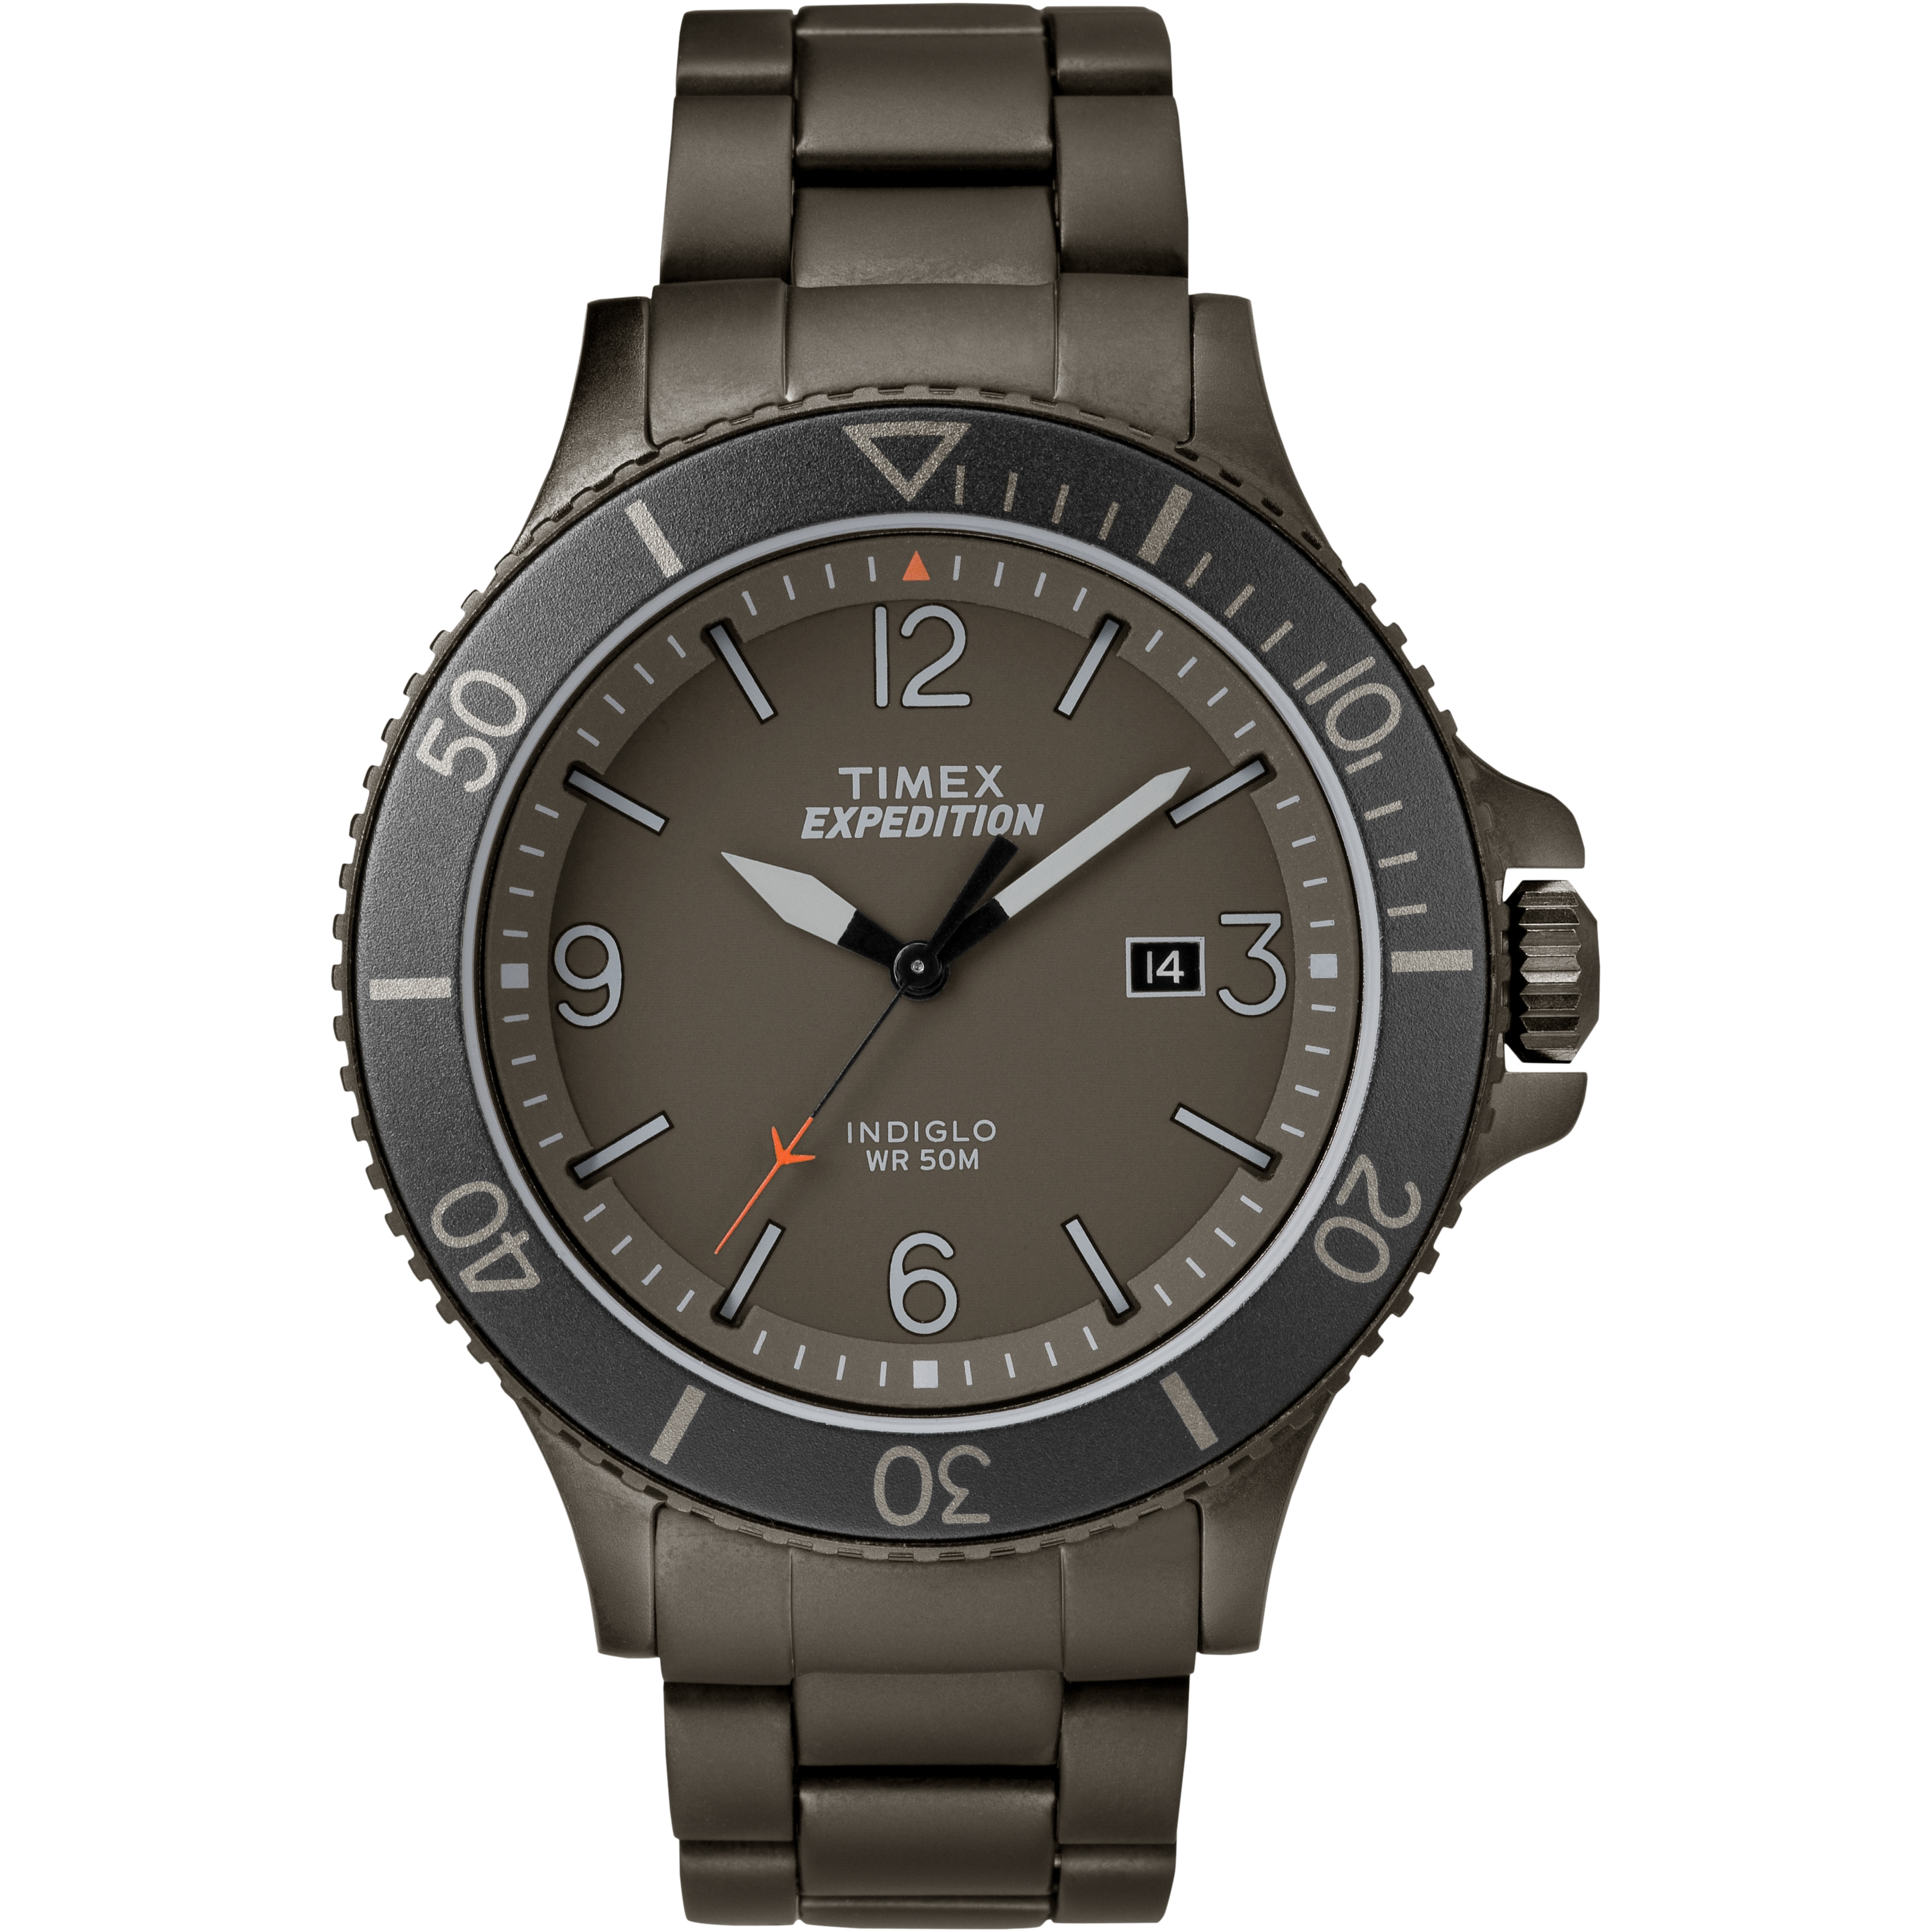 gents timex expedition ranger watch tw4b10800 watchshop com rh watchshop com timex expedition watch manual wr50m timex expedition watch manual wr50m